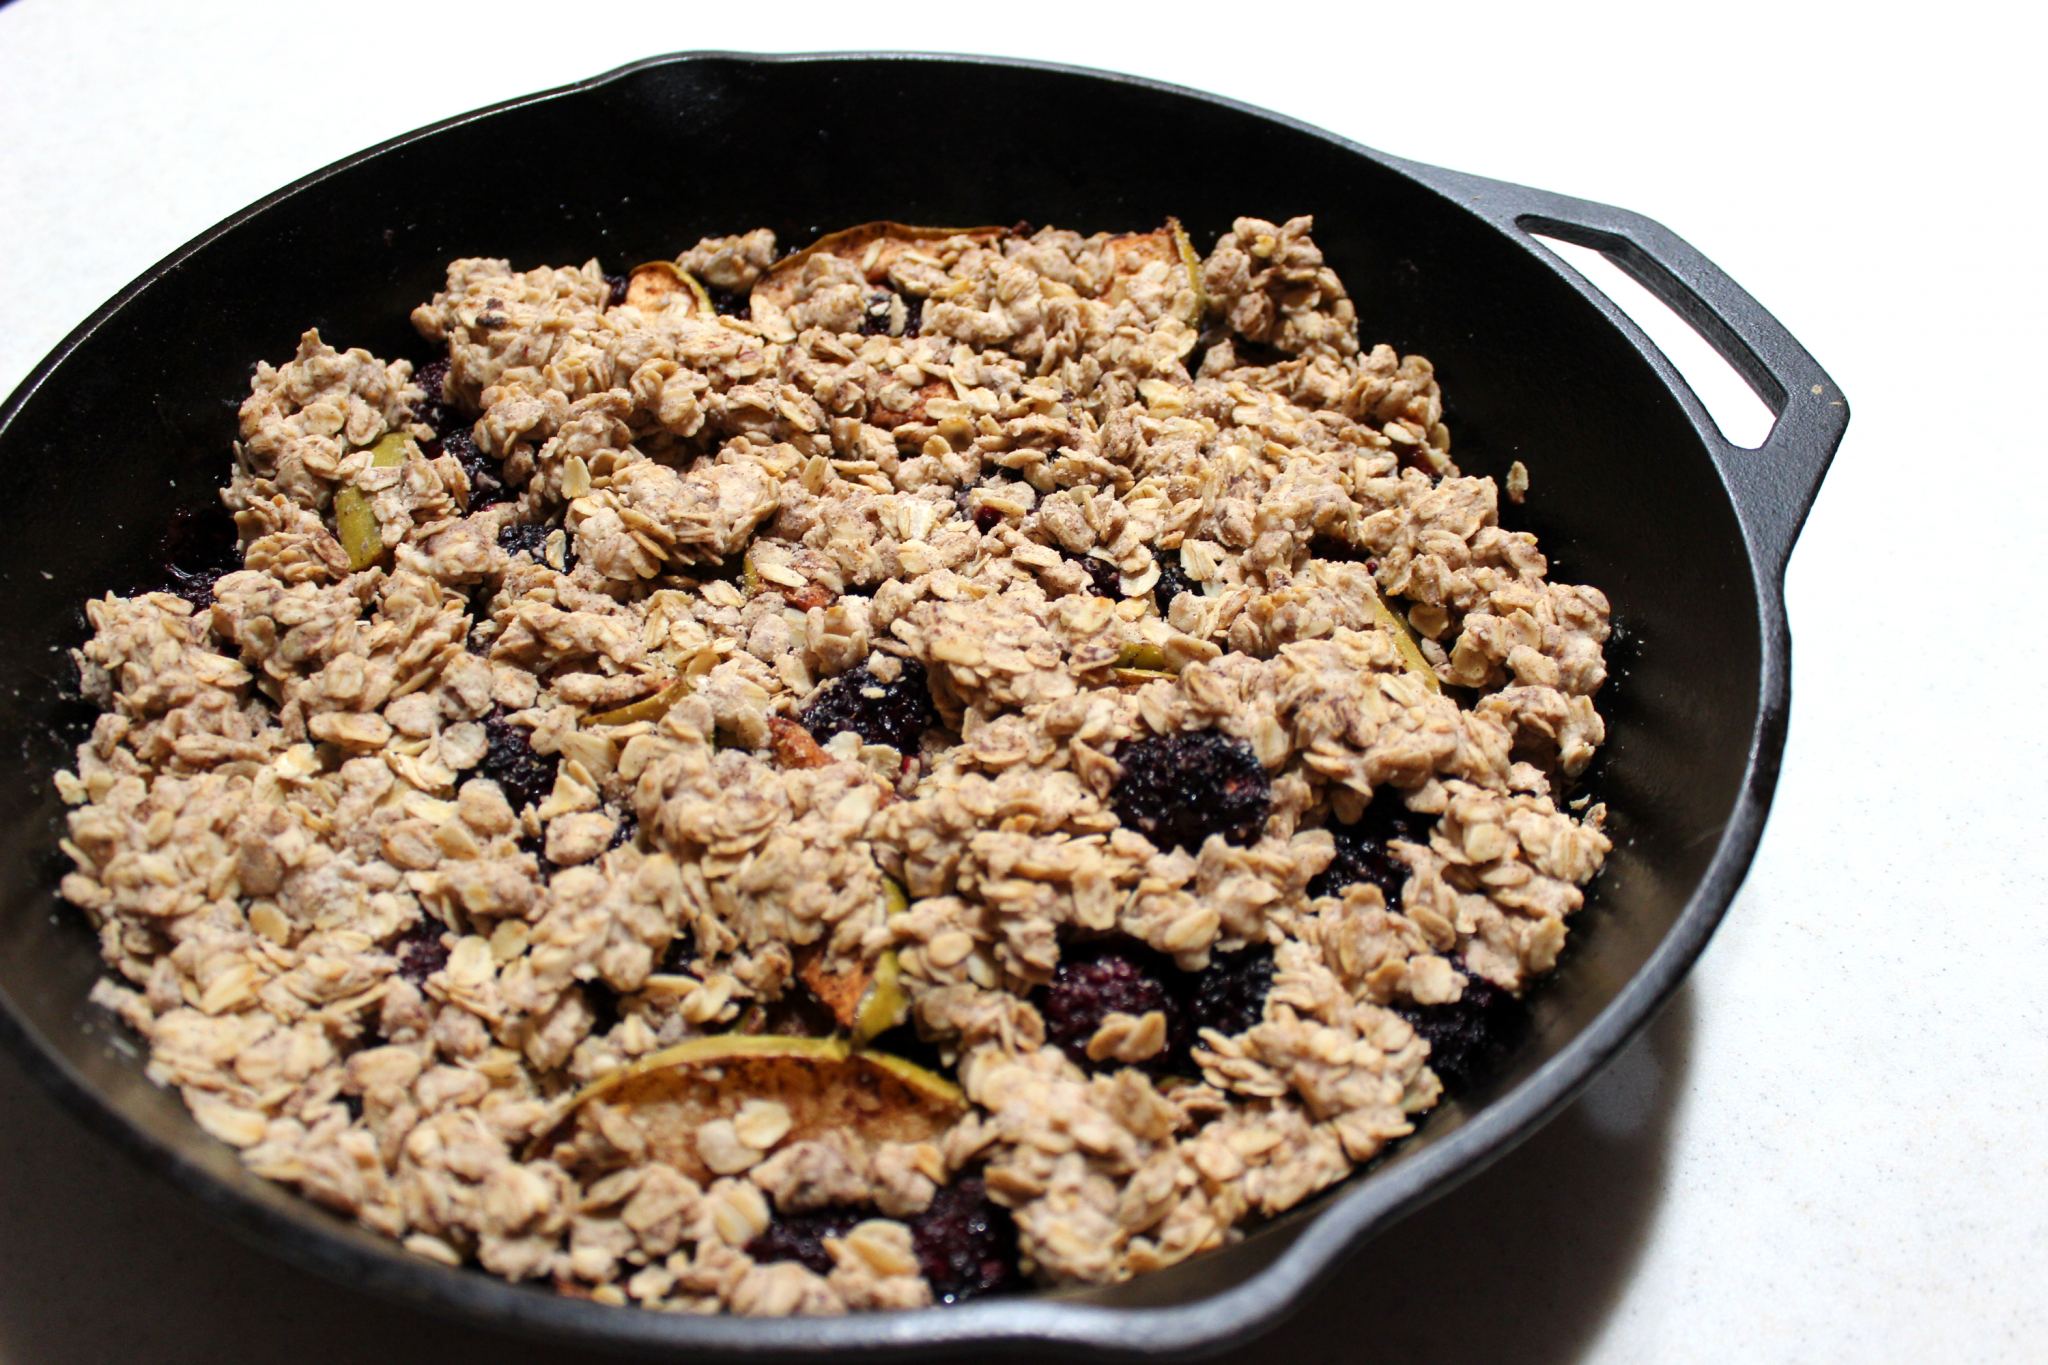 oats, apples, and blackberries in skillet